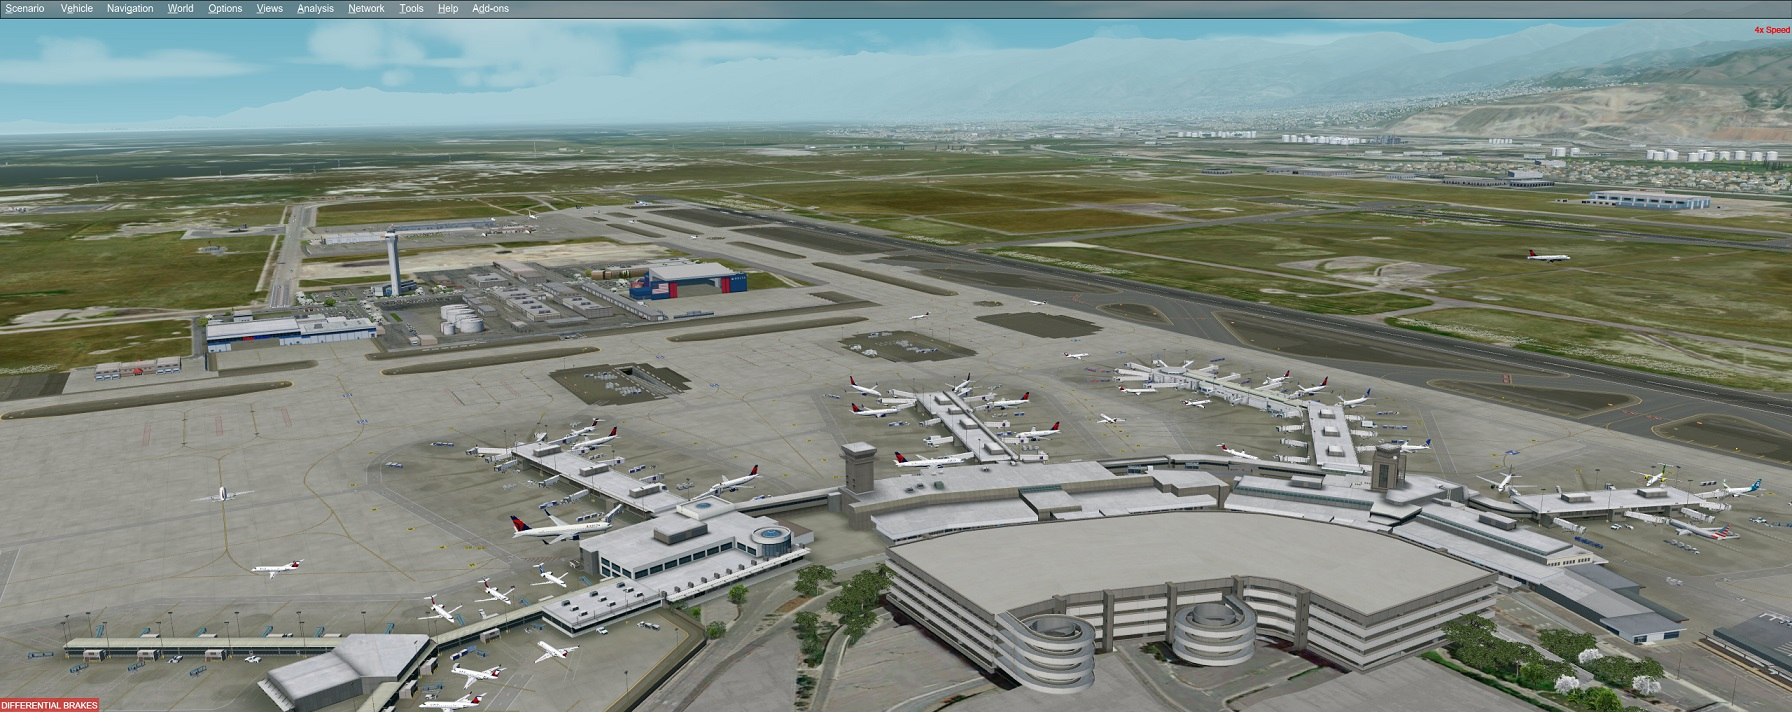 PacSim – KSLC Salt Lake City International Airport | JCAI